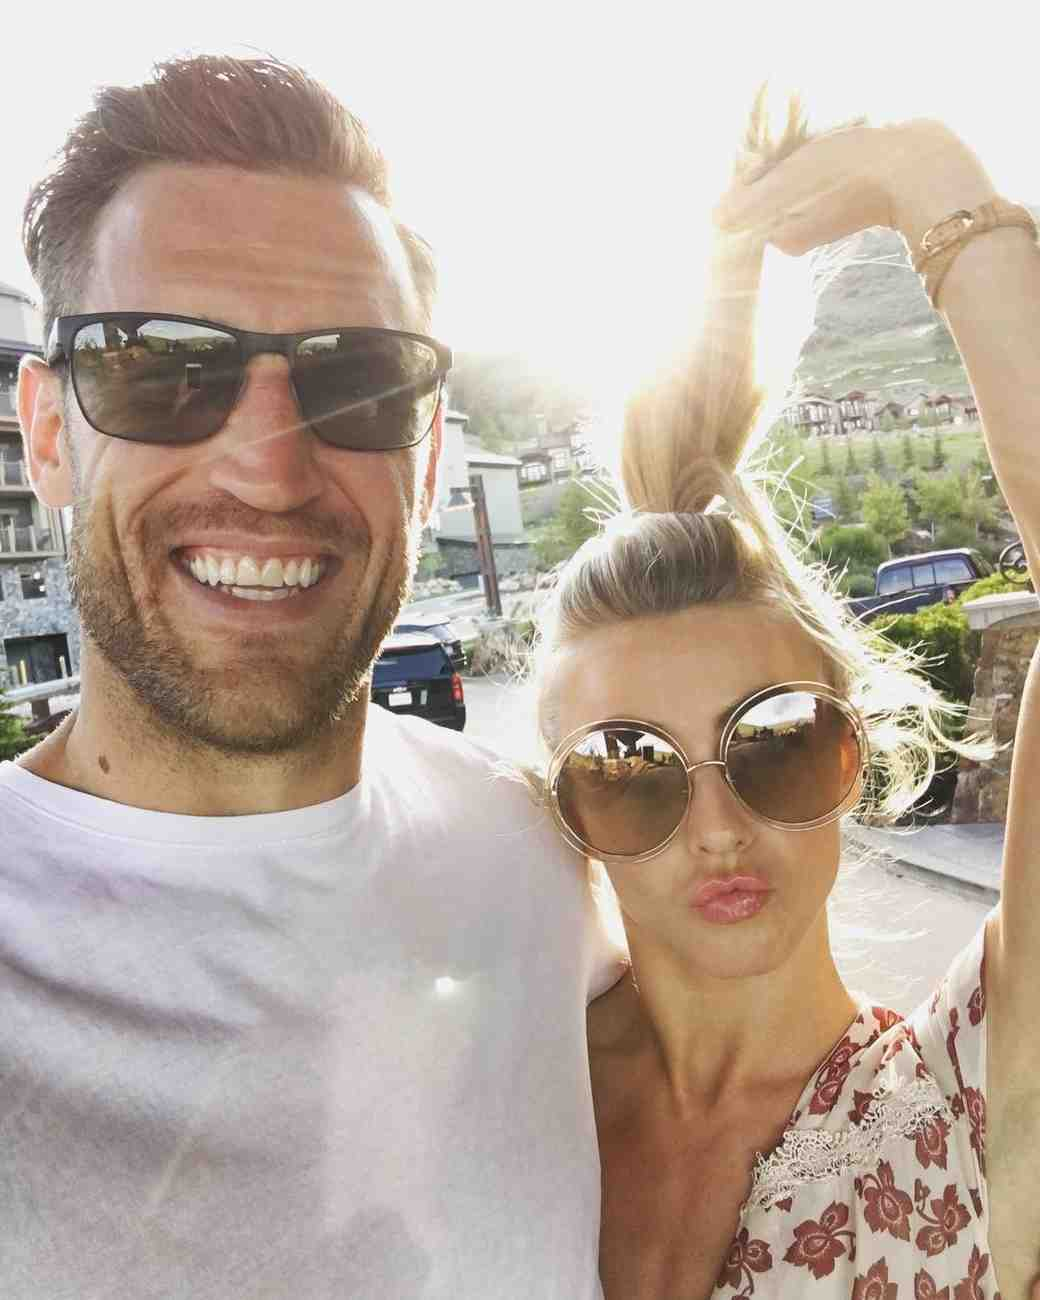 Julianne Hough and Brooks Laich share a silly date night photo